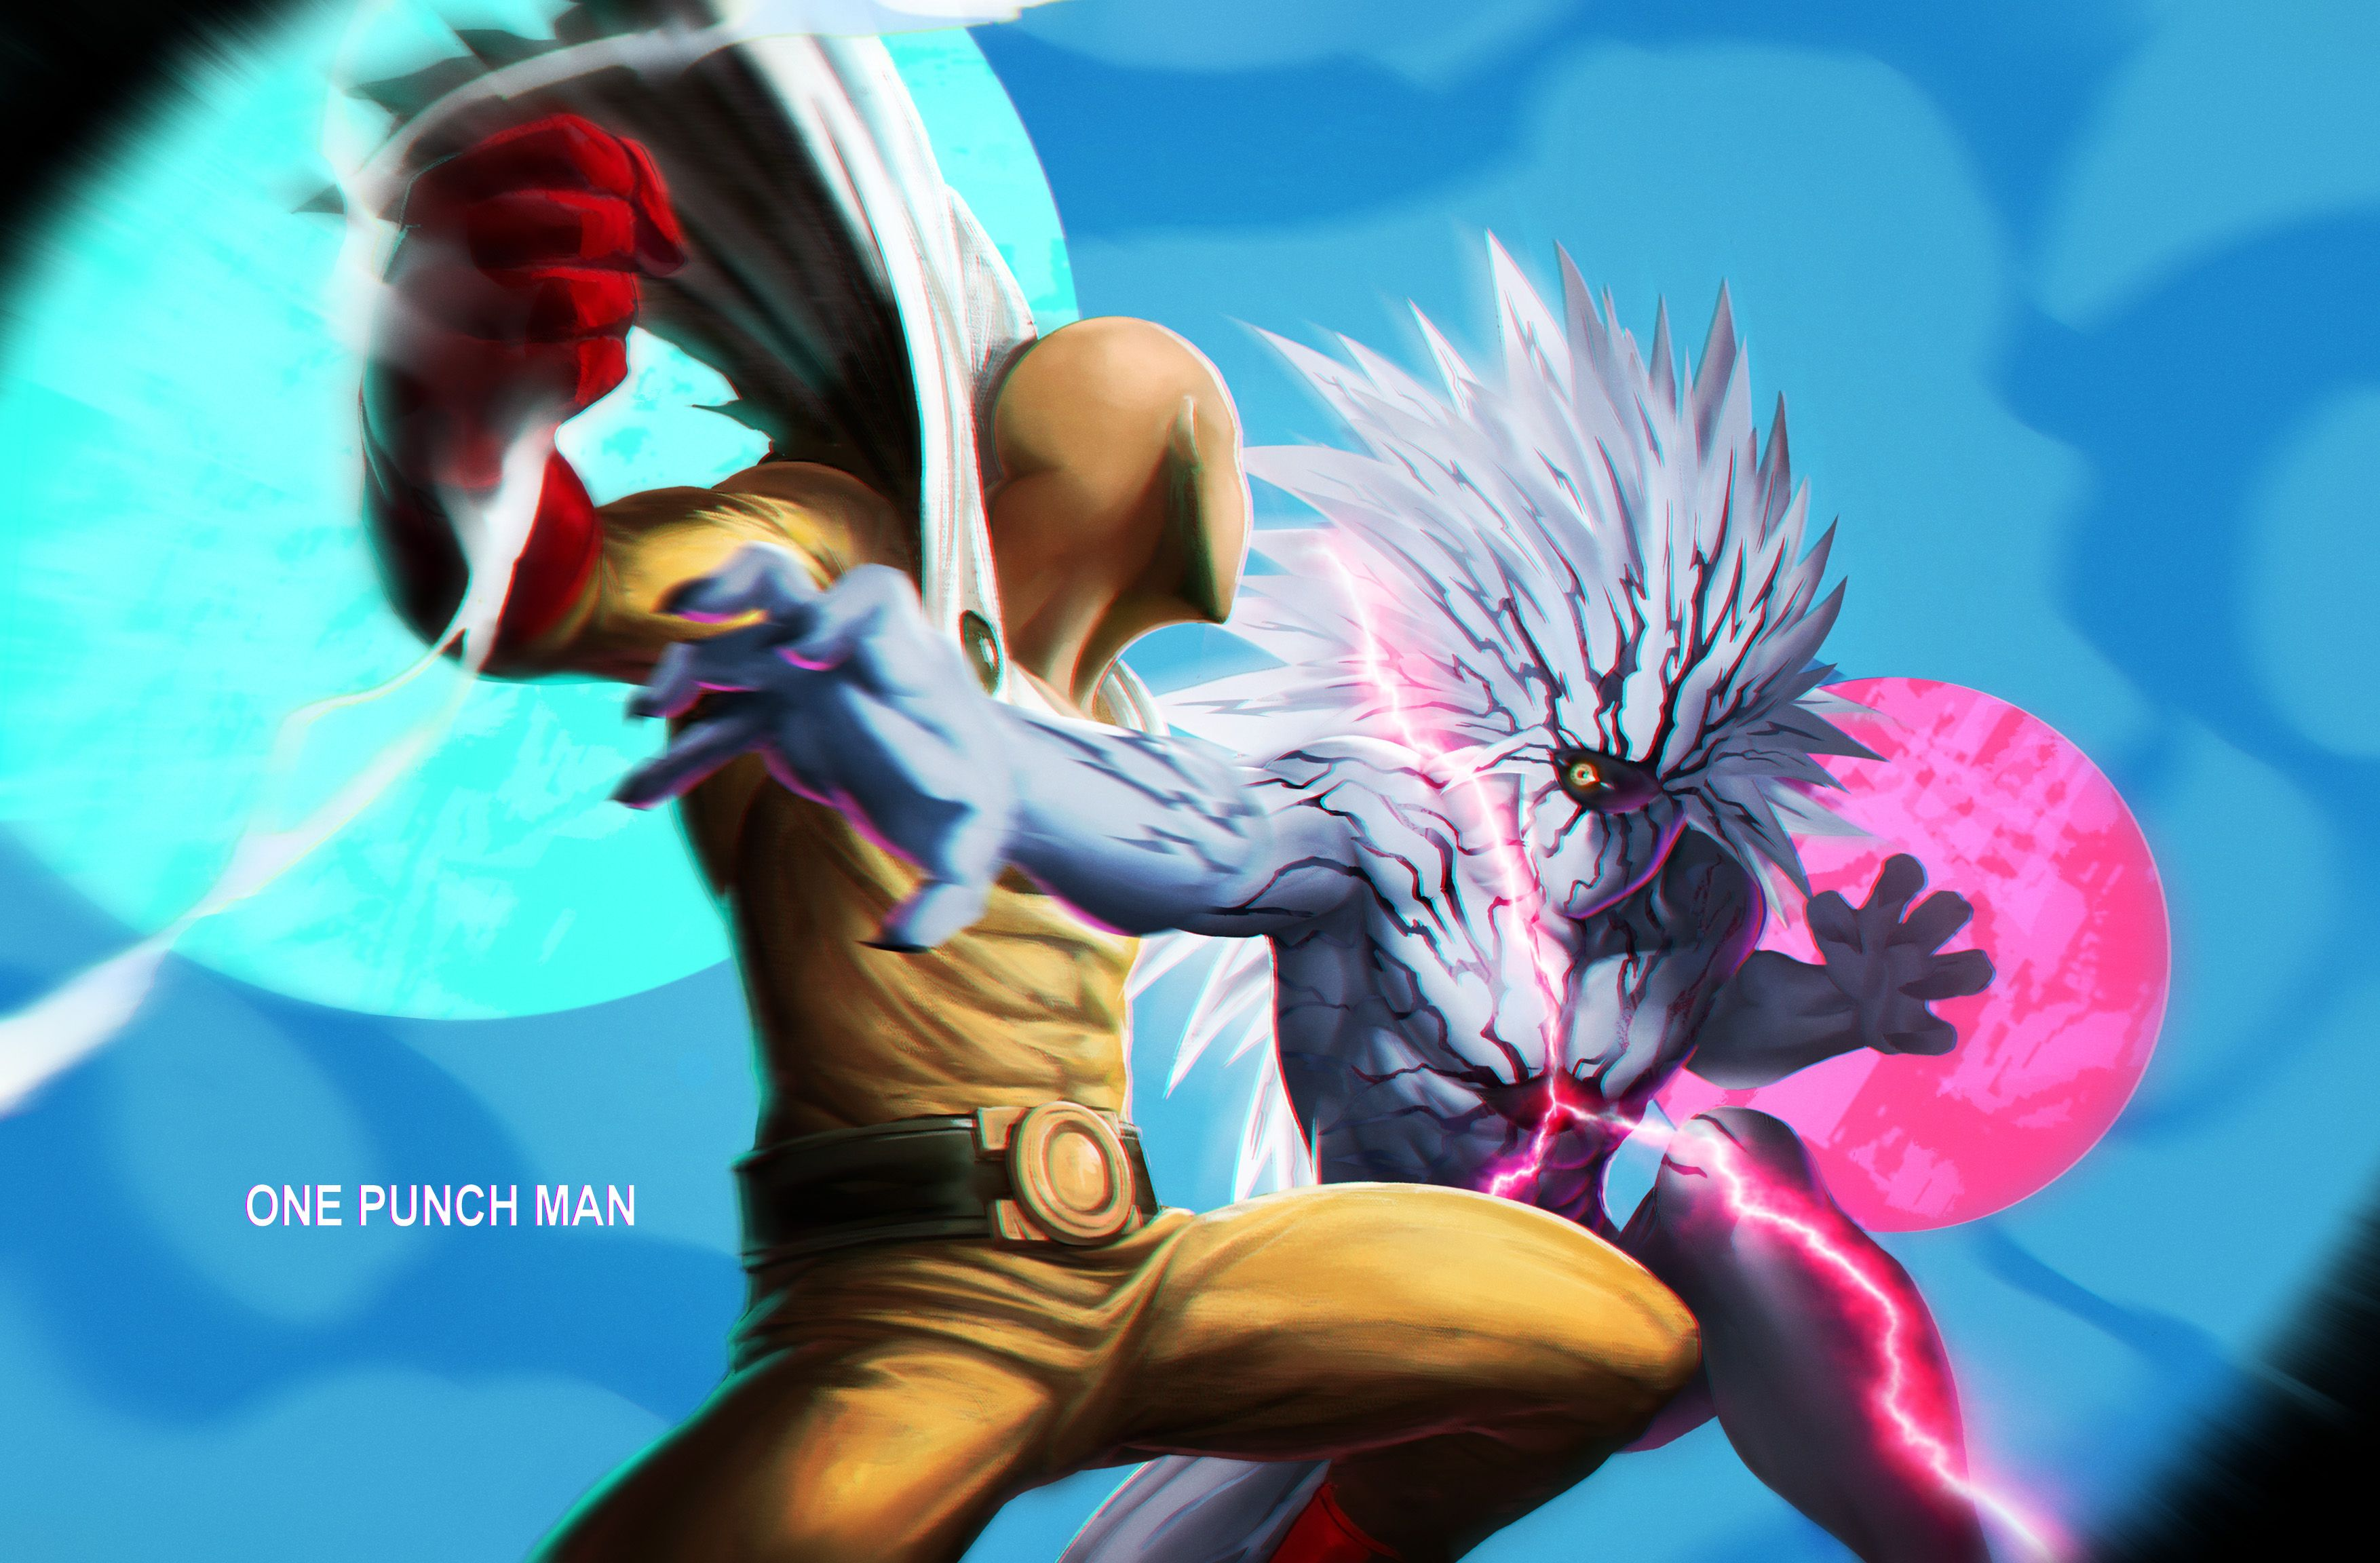 Saitama Vs Lord Boros Computer Wallpapers Desktop Backgrounds 3508x2304 Id 671480 One Punch Man Anime One Punch Man One Punch Man Manga